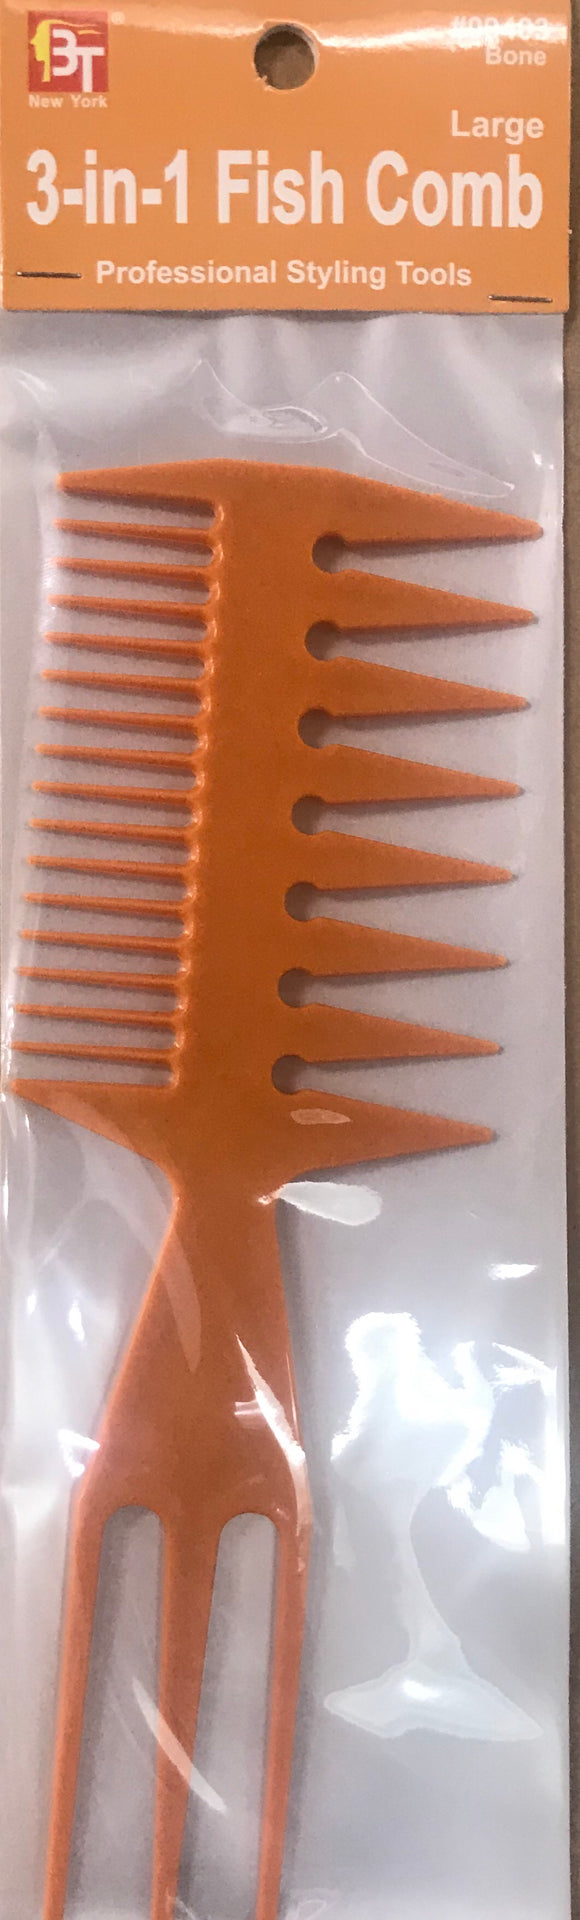 PLASTIC COMB 3-IN-1 FISH COMB LARGE BONE - Dozen - Palms Fashion